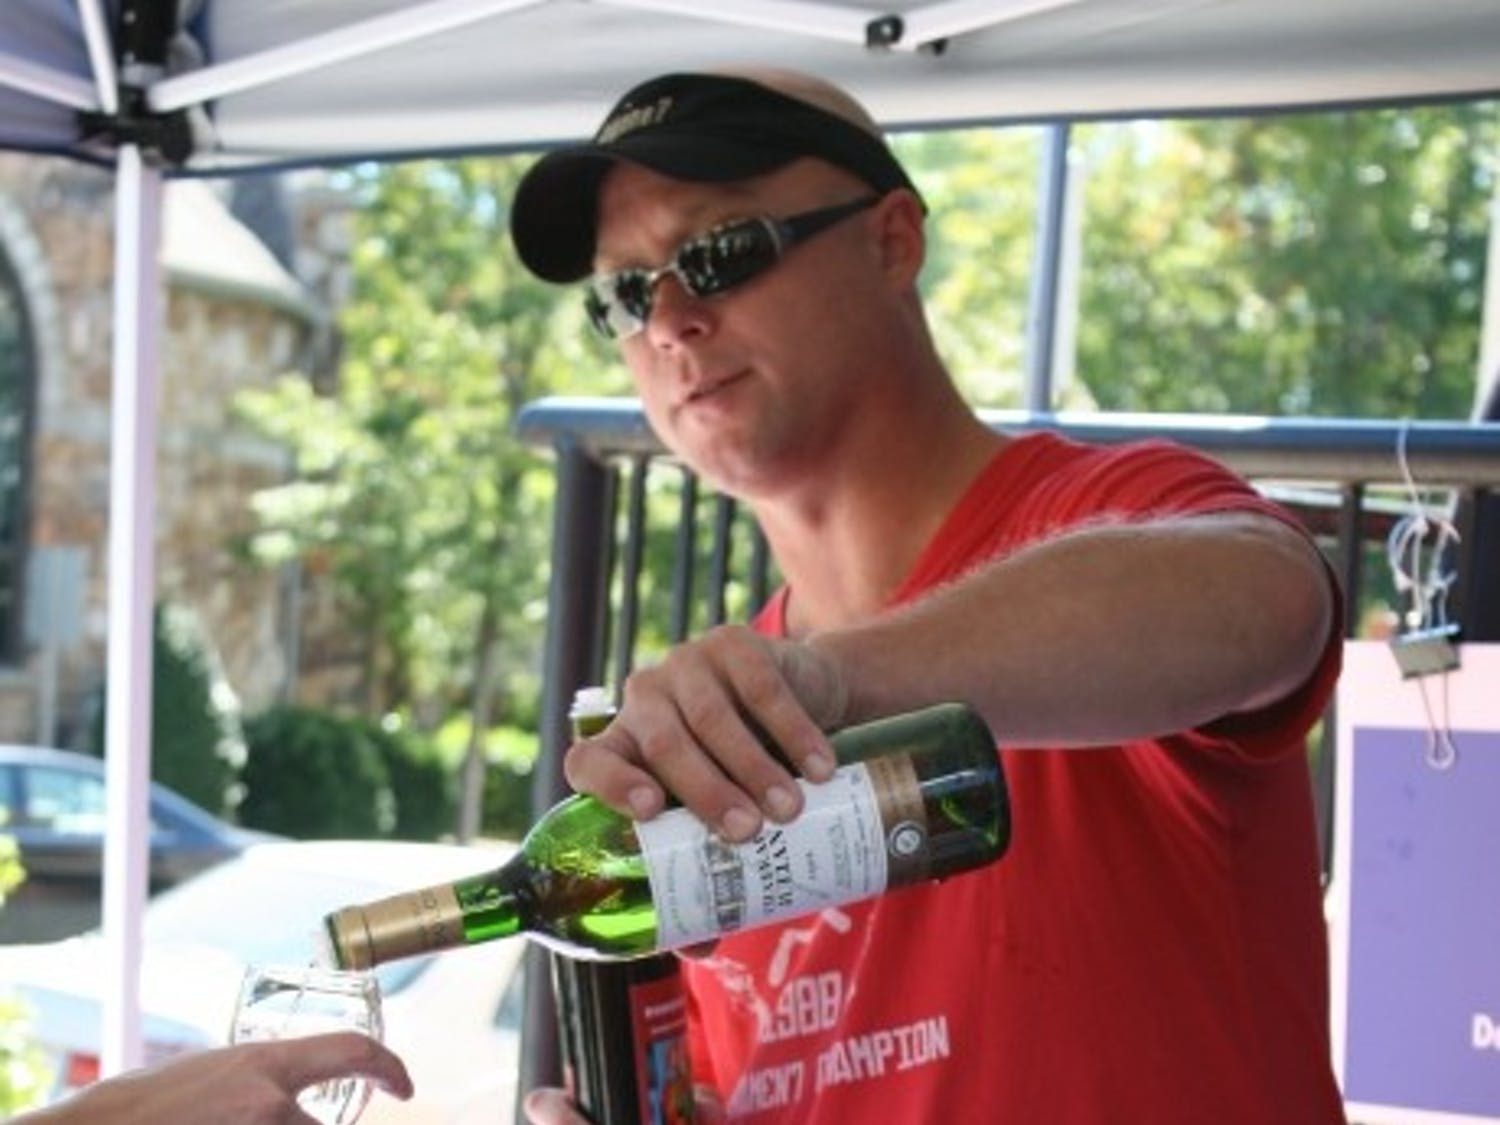 Dan Benthall pours a glass of wine at the Weaver Street Market 7th Annual Fall Wine Sale and Show at Southern Village on Saturday, Oct. 9, 2010.